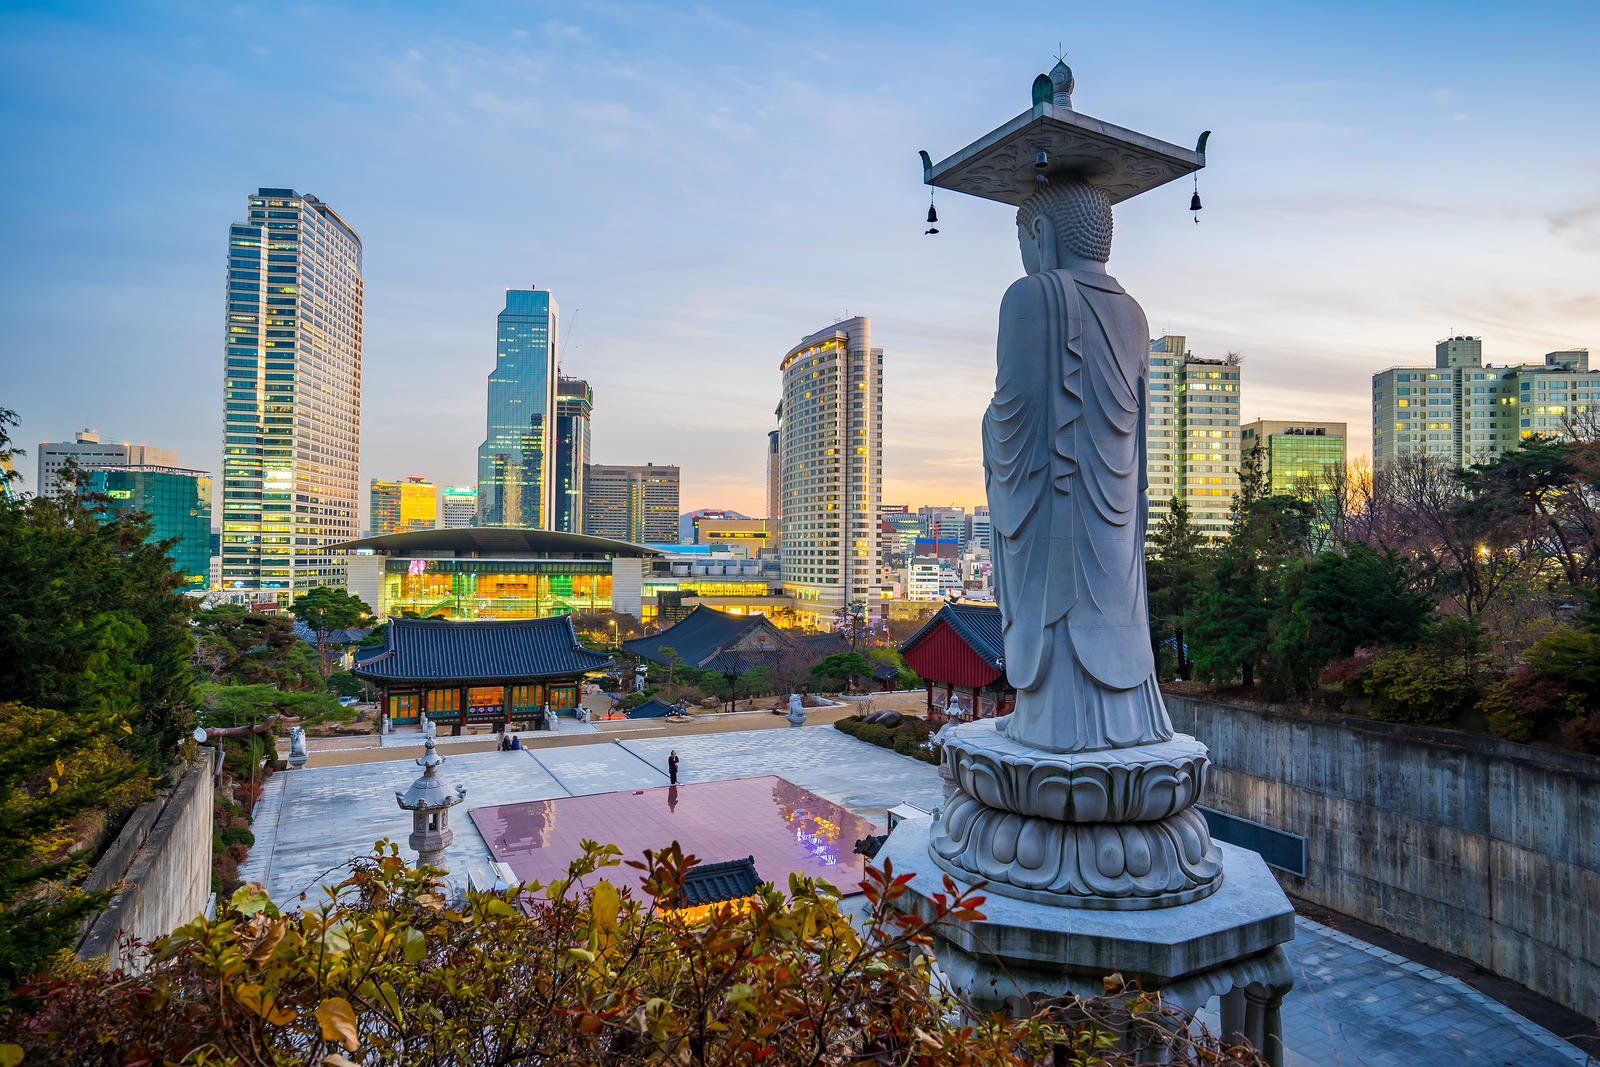 The Best 10 Photo Spots in Gangnam that you may not know